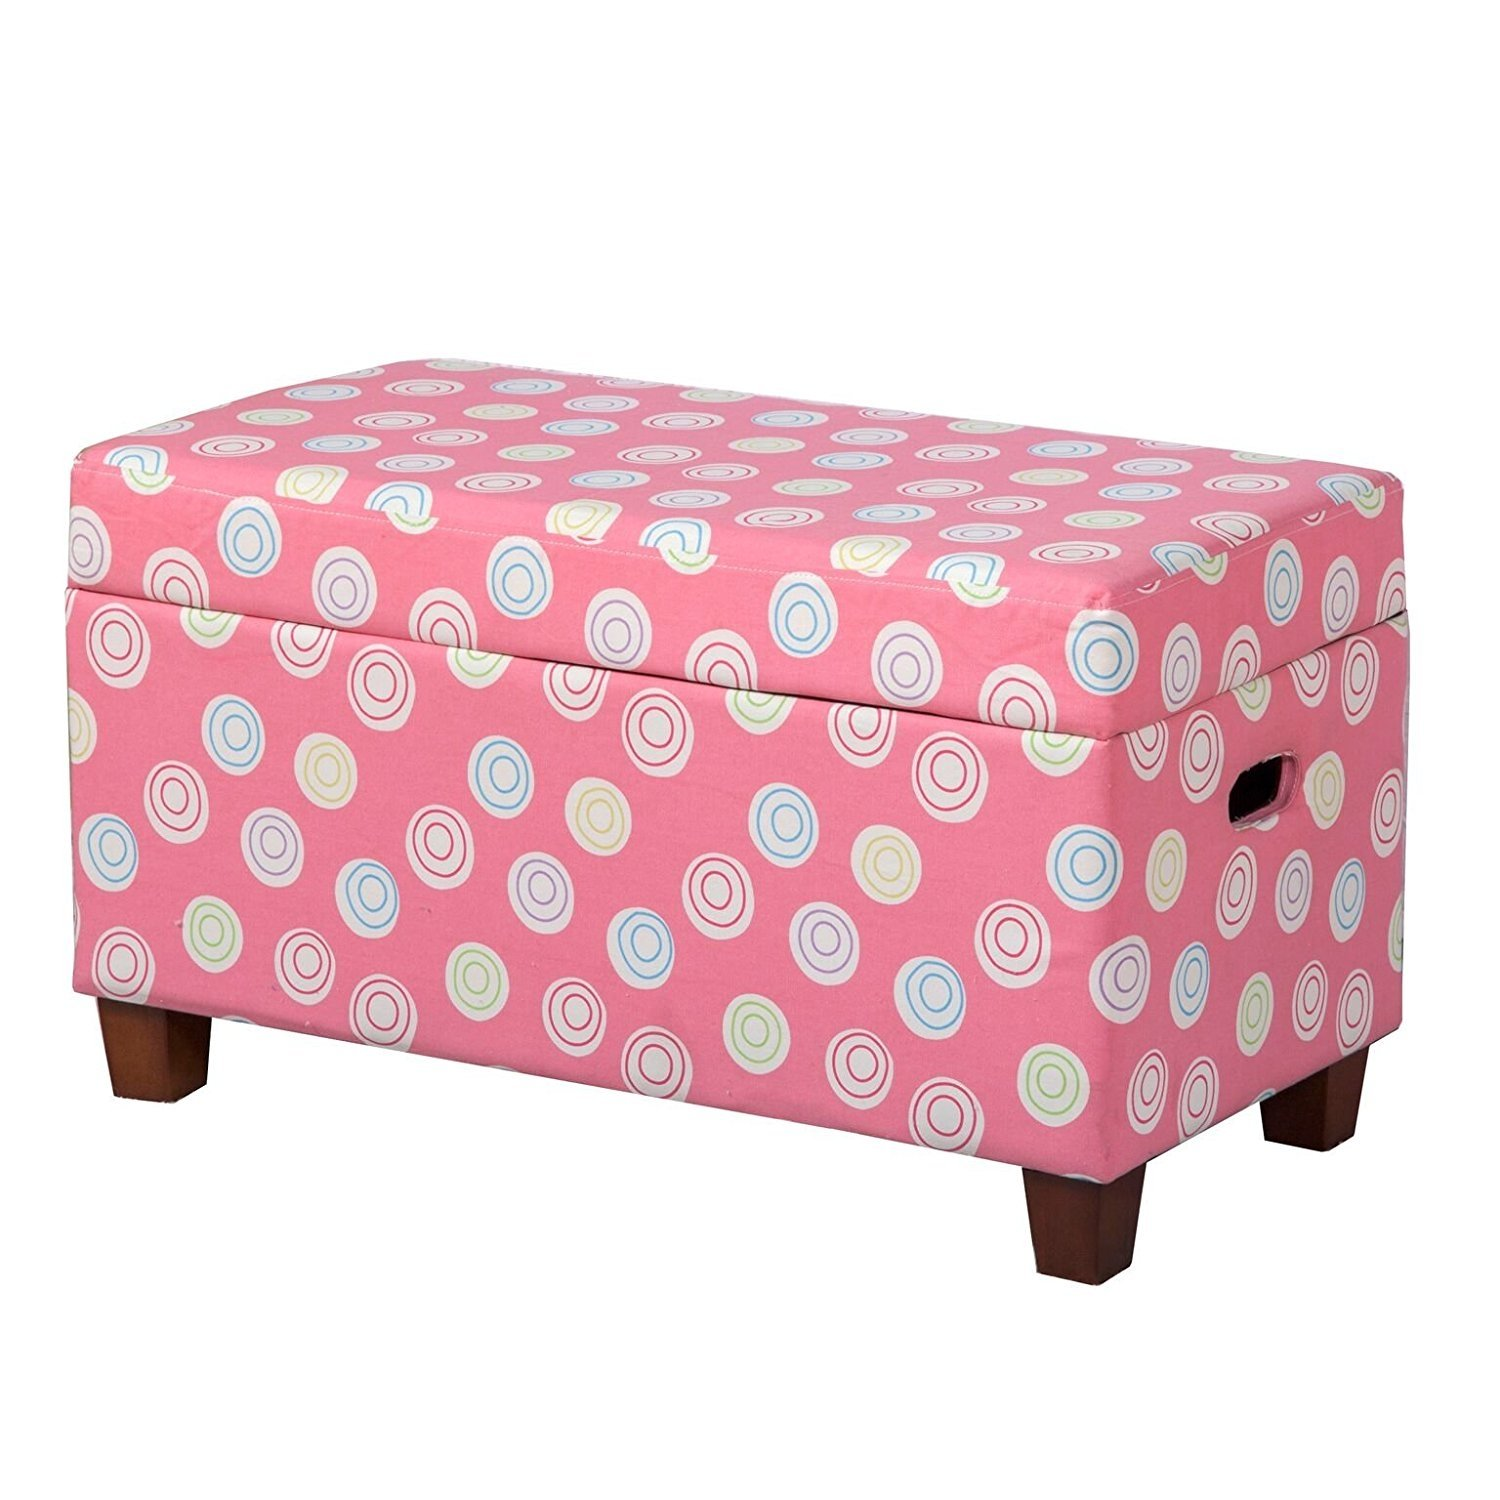 Kinfine Youth Upholstered Storage Bench with Hinged Lid, Tufted Swirls on Pink